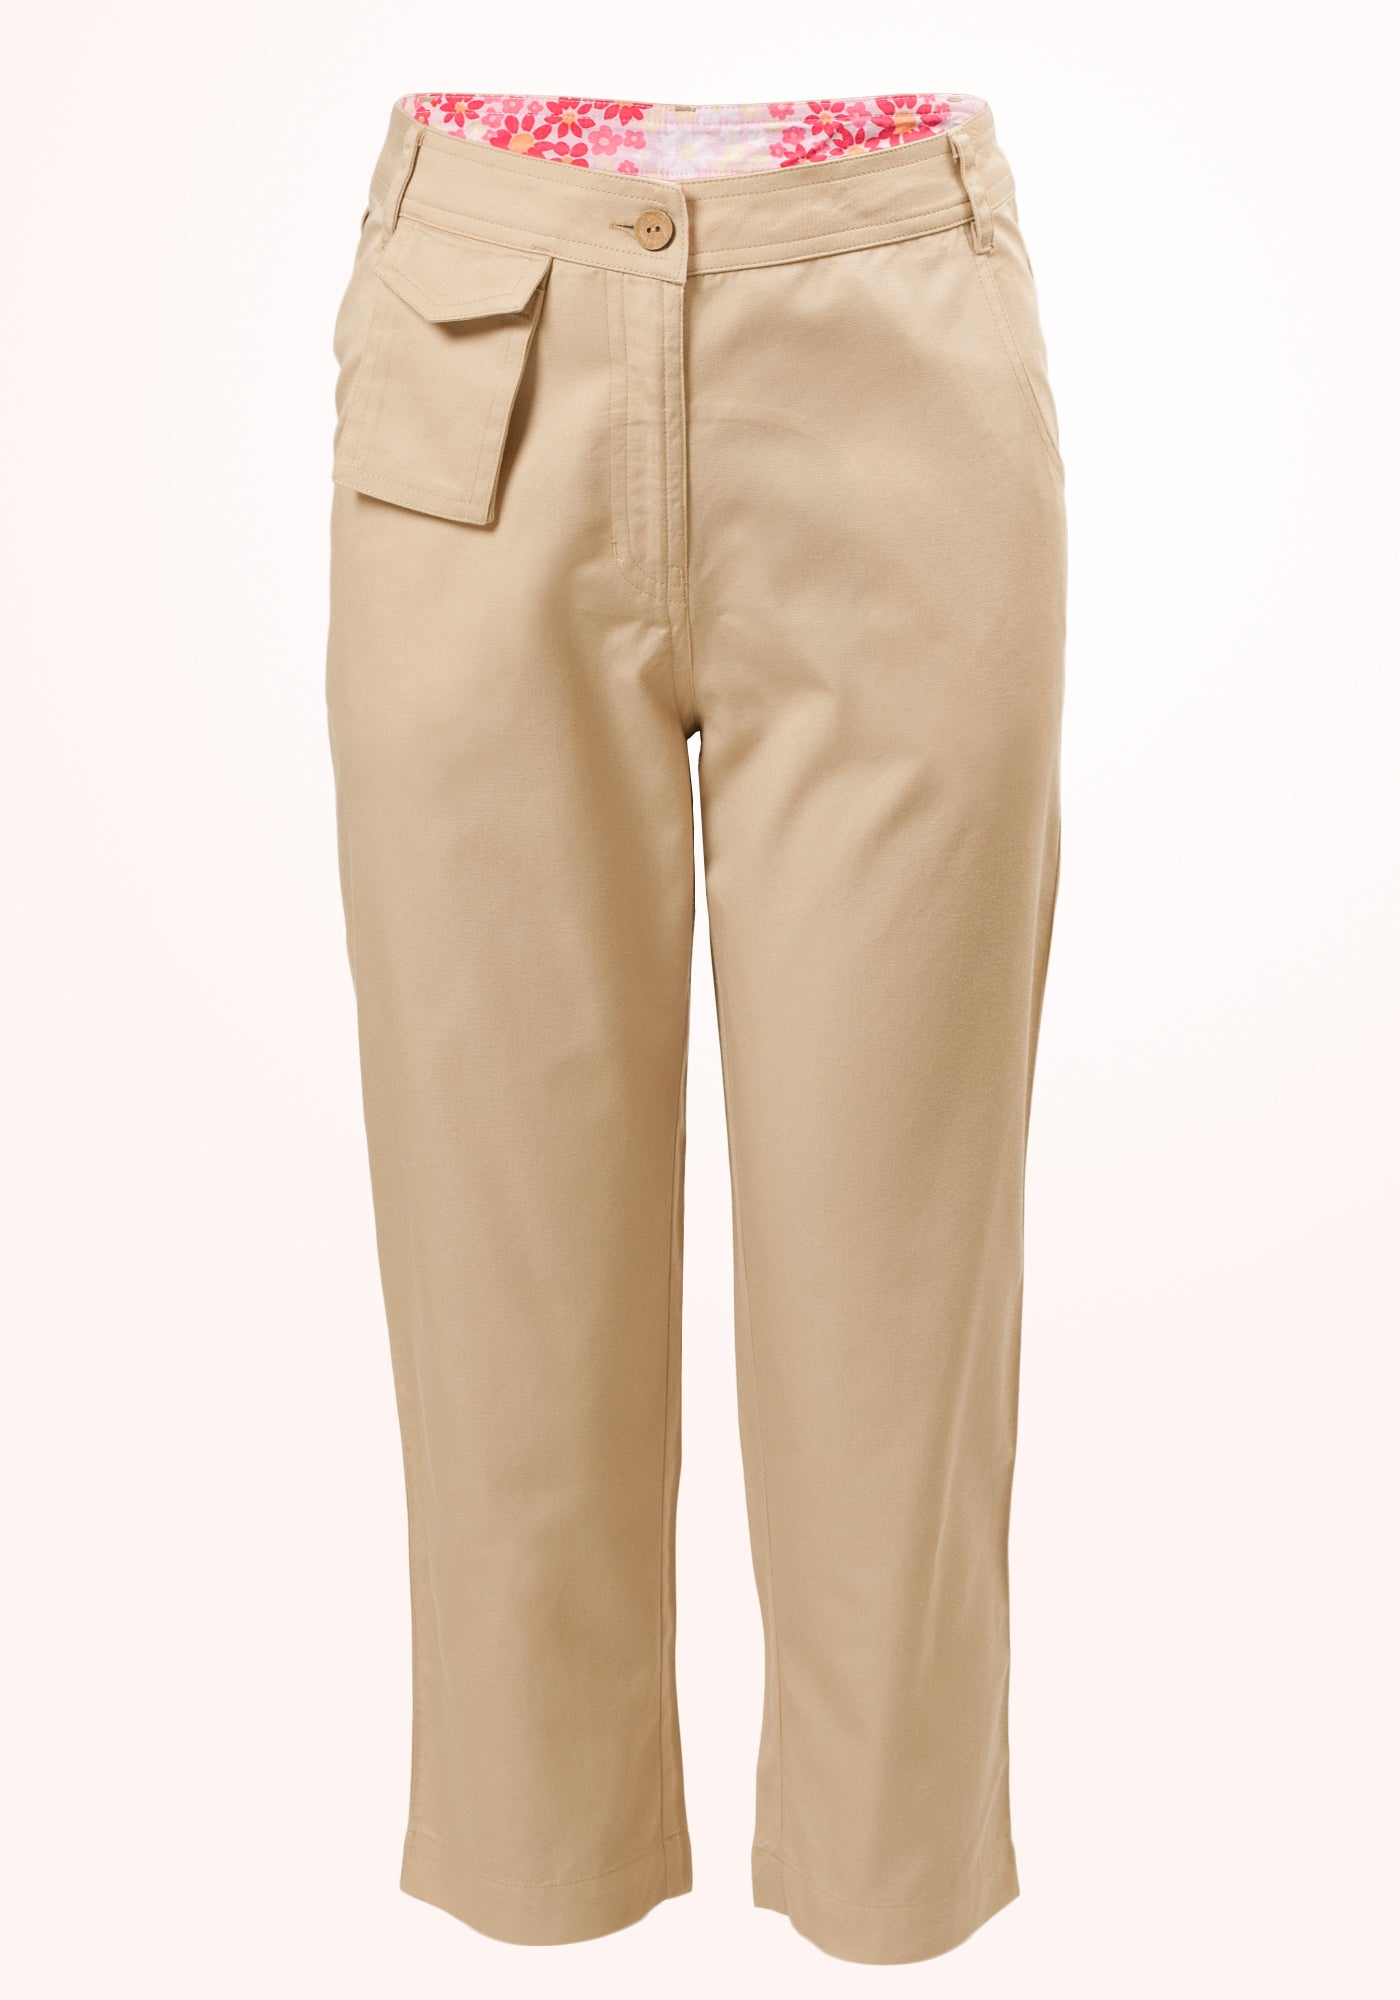 Winter Wheat Girls Trousers in Beige Cotton Twill - MINC ecofashion